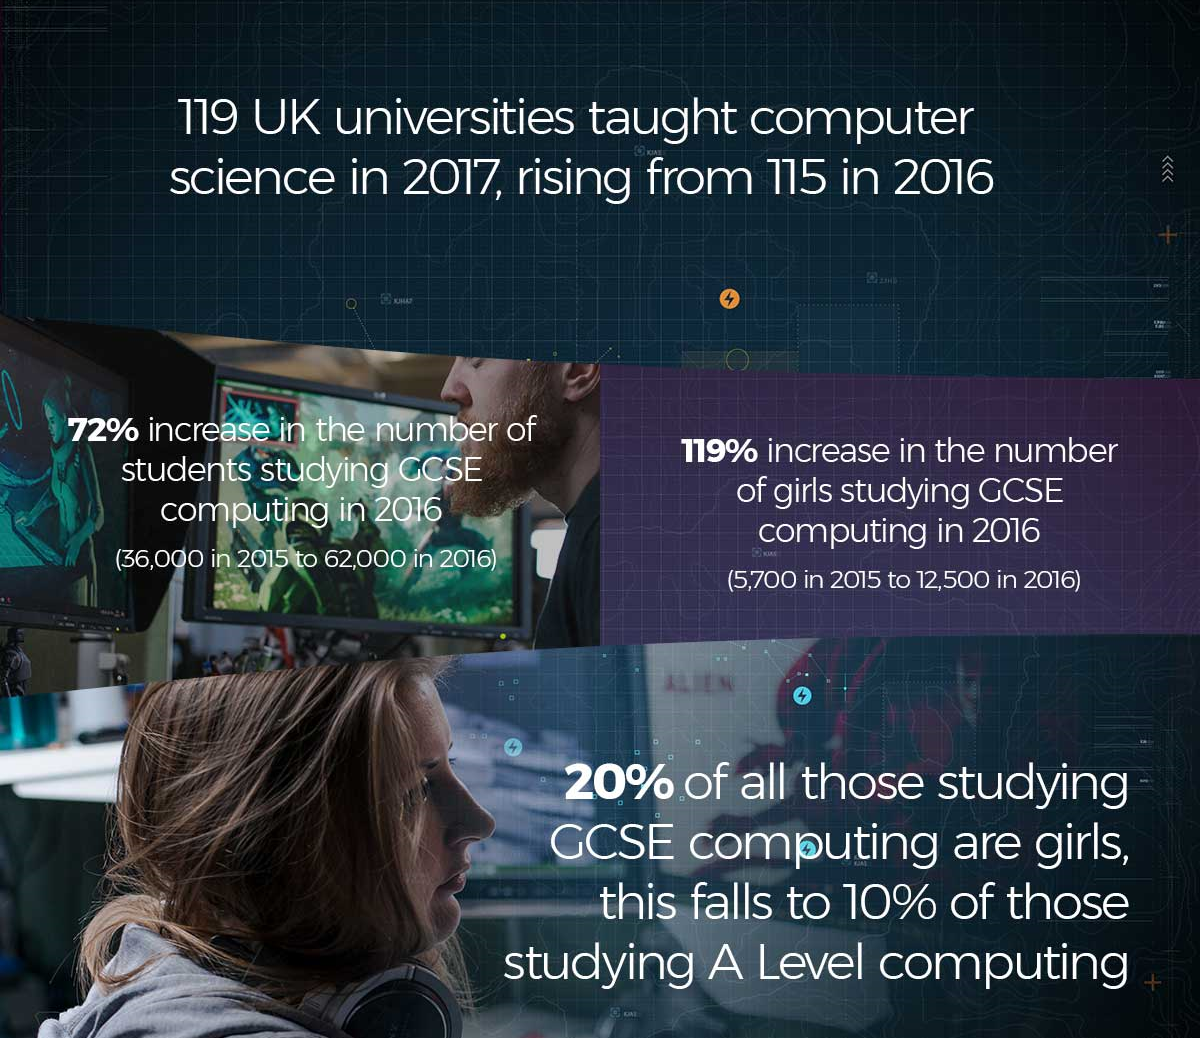 Programming education in the UK